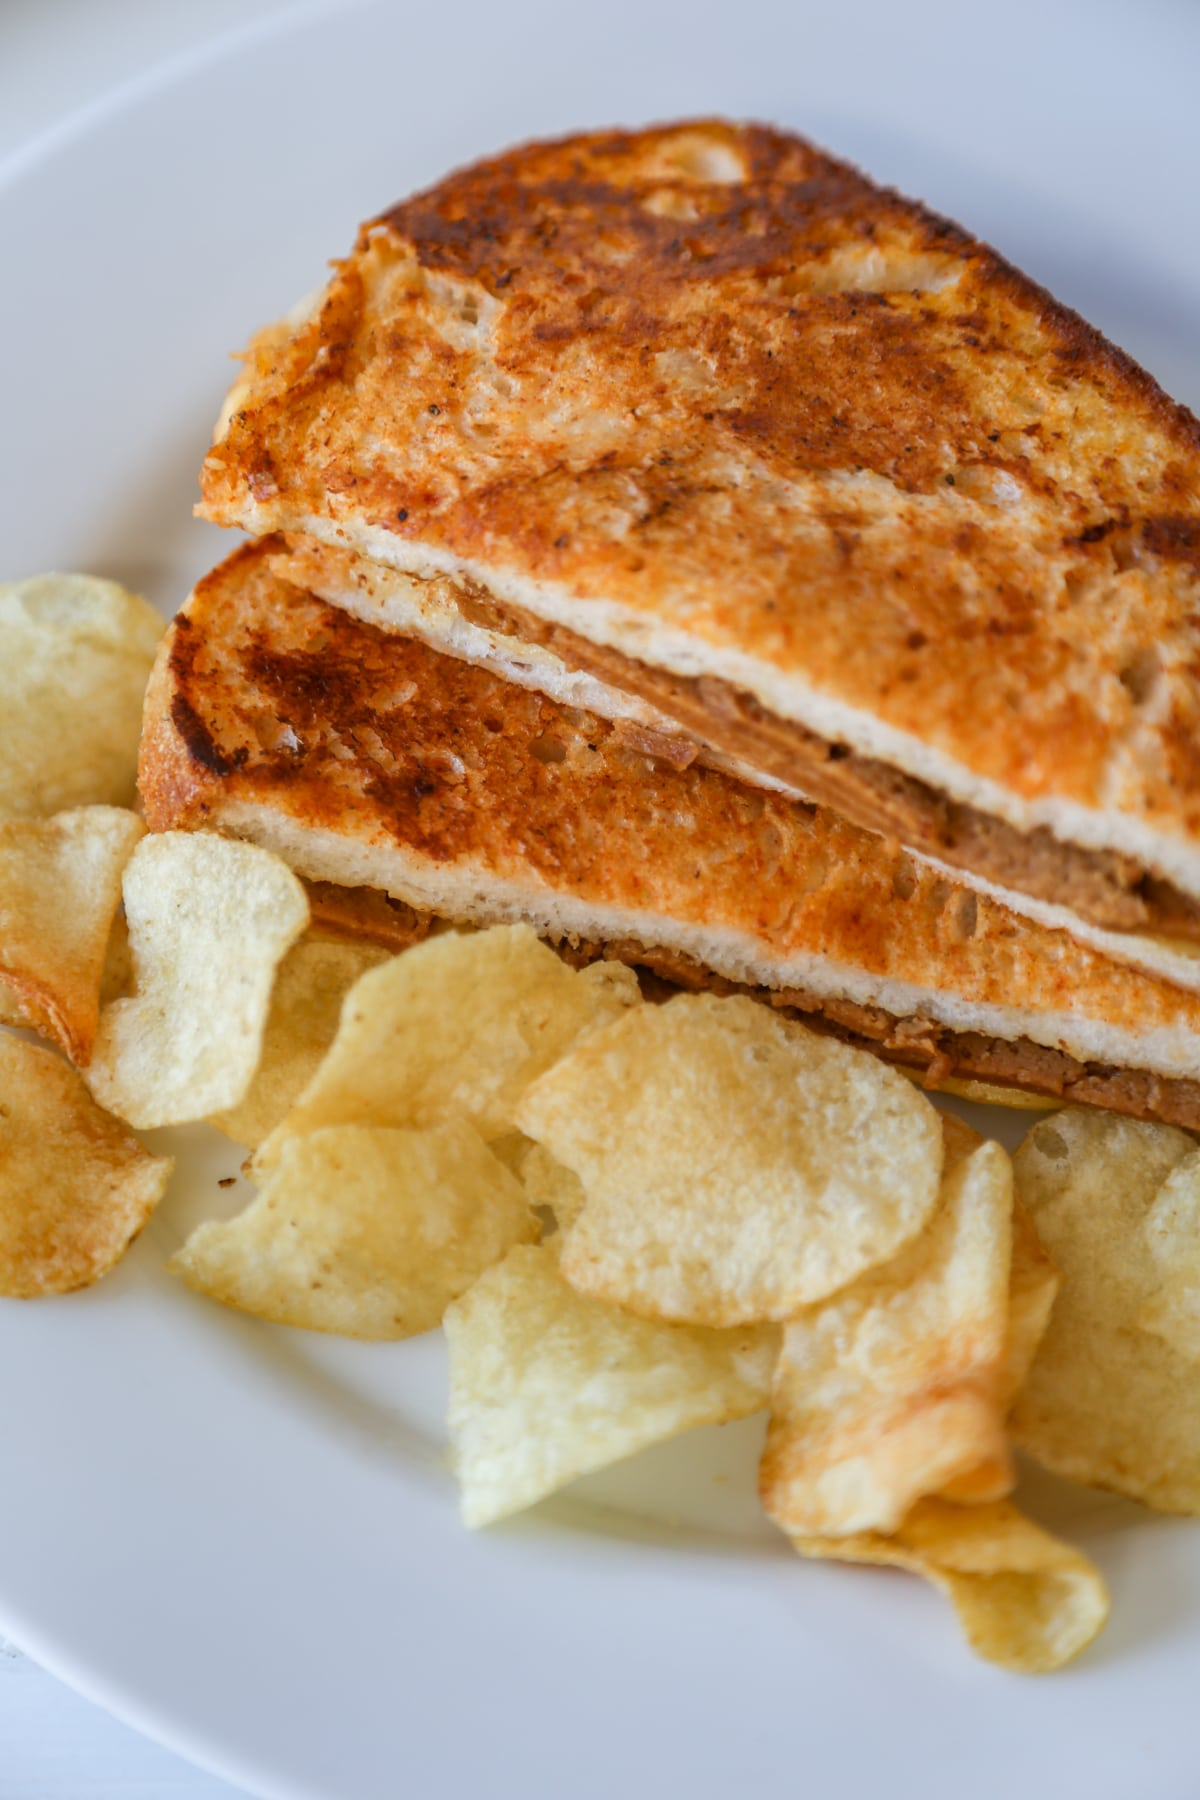 A grilled monte cristo sandwich cut in half in triangles and stacked on a white plate with potato chips.